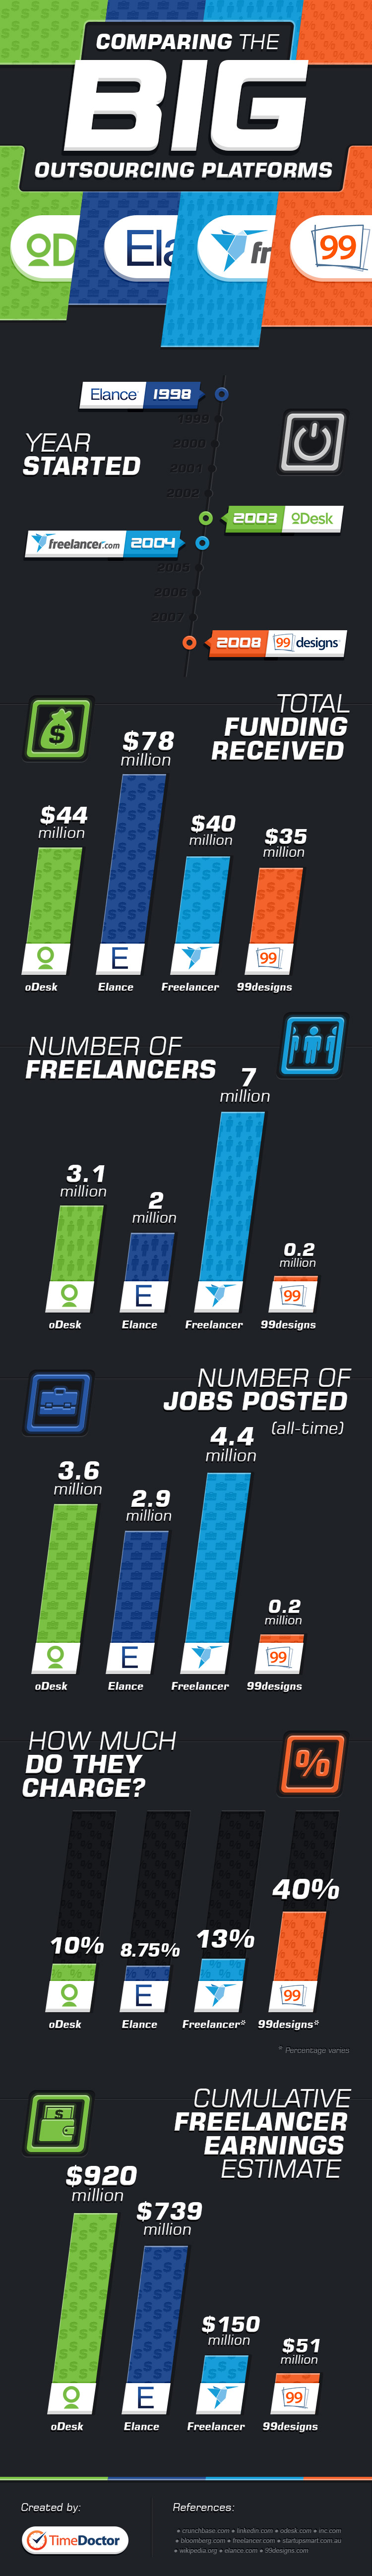 Upwork (formerly oDesk) vs Elance vs Freelancer and 99designs - Infographic